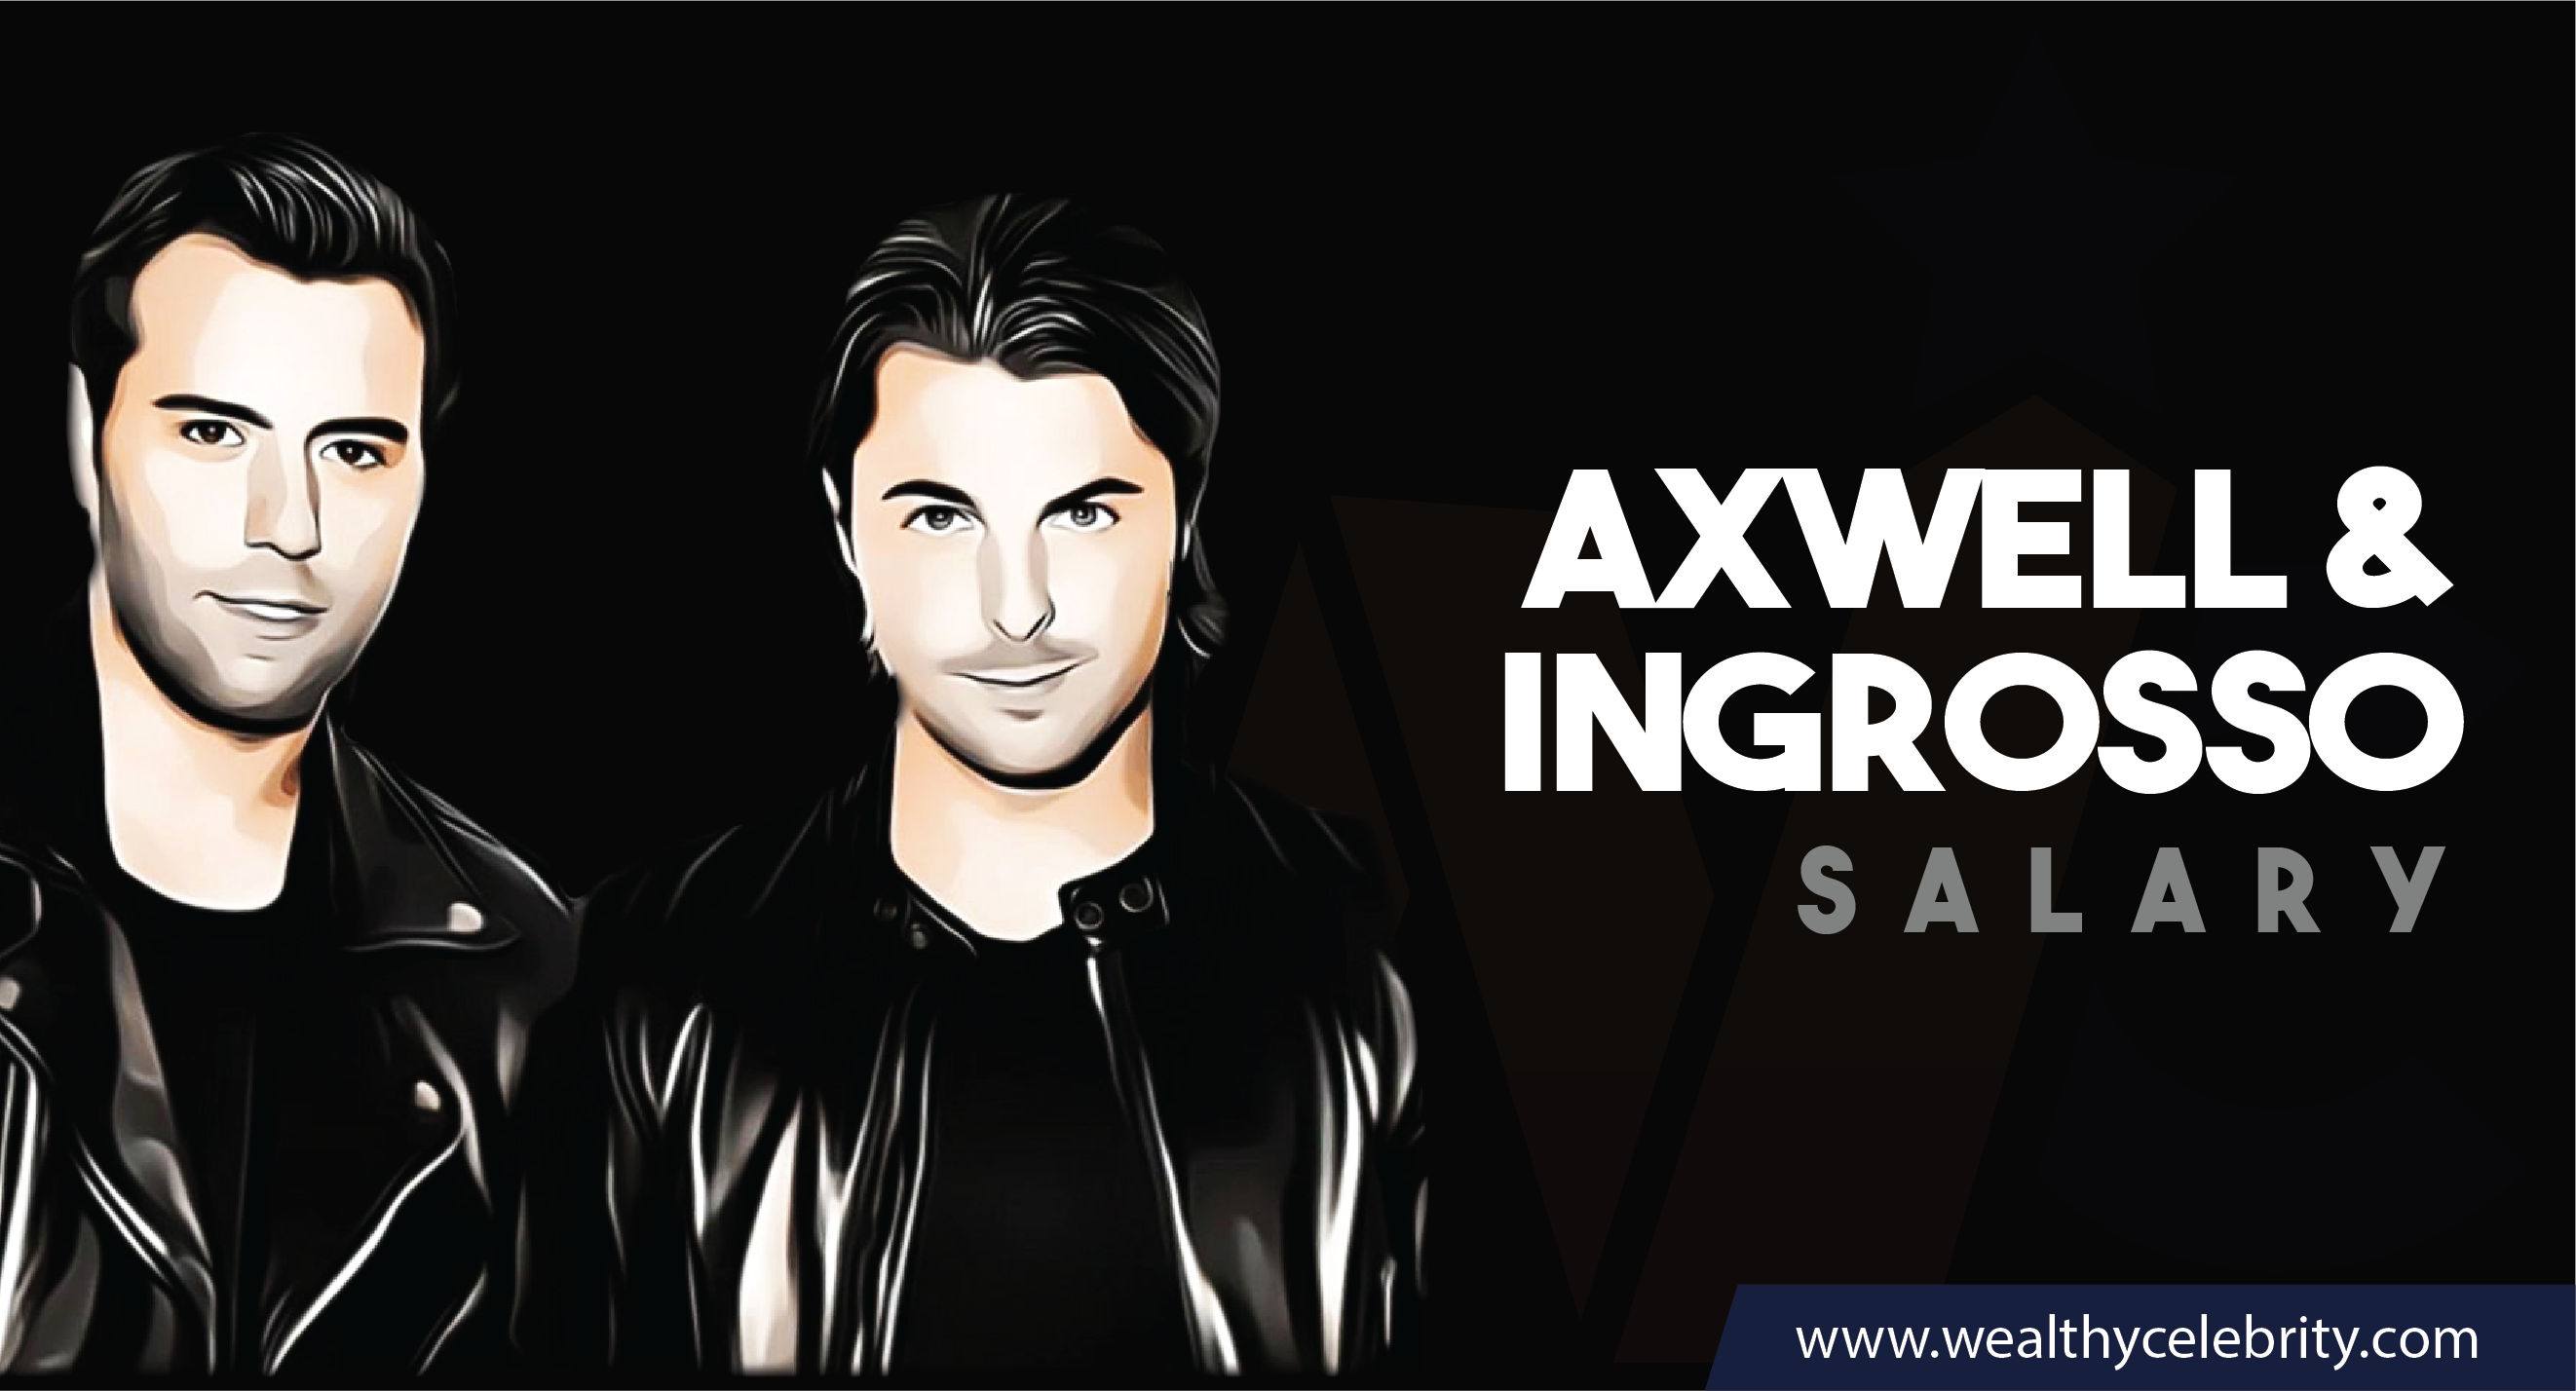 Axwell & Ingrosso DJ - Current Salary Net Worth